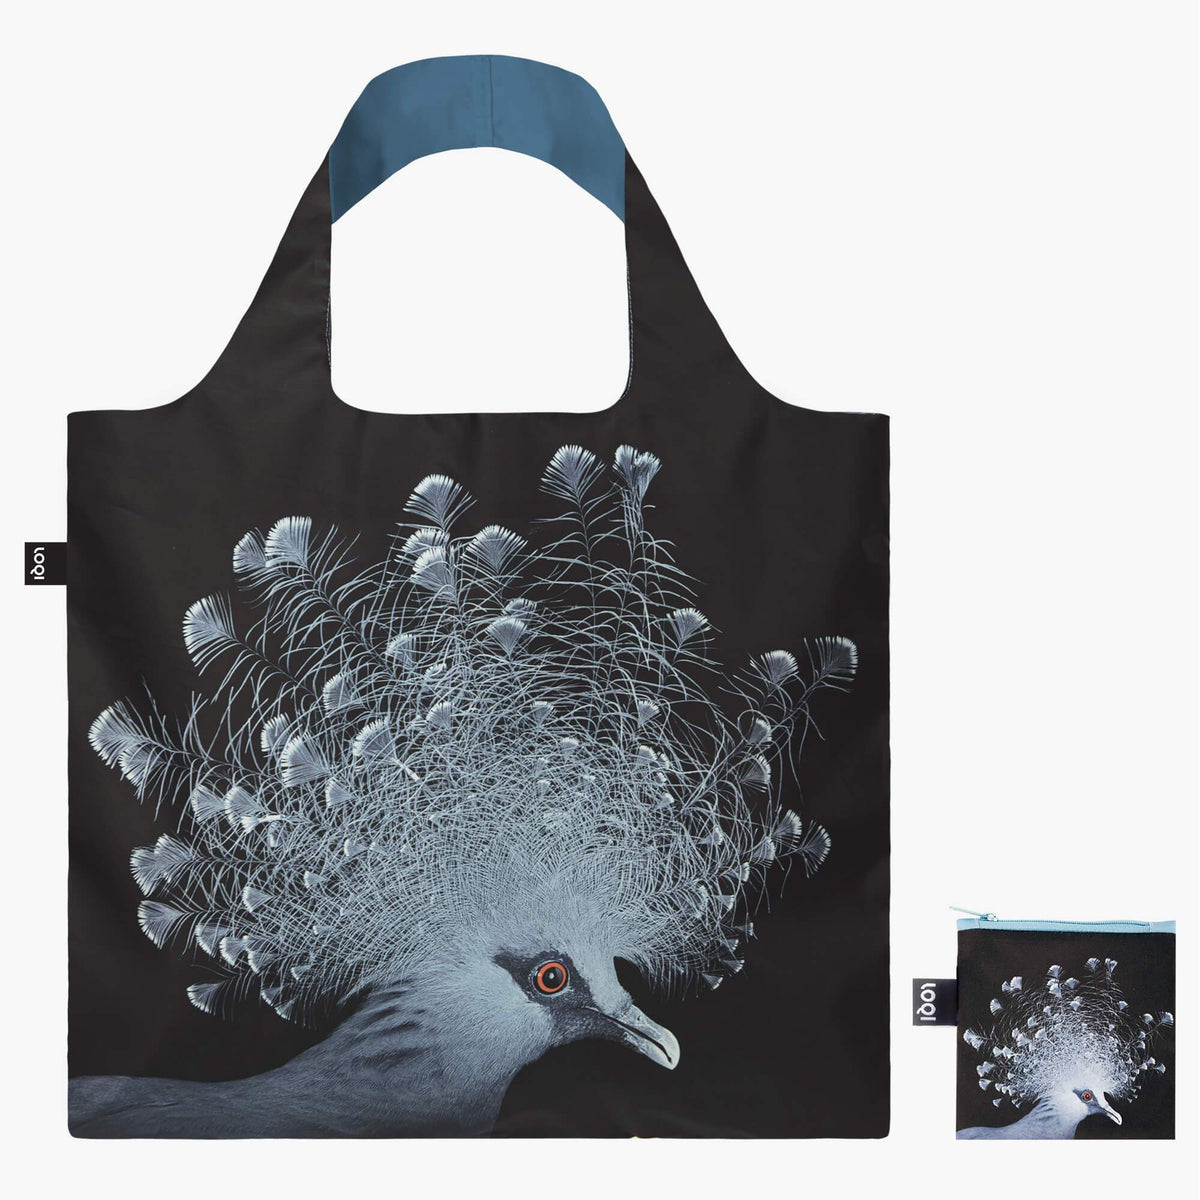 Photo Ark Crowned Pigeon Bag